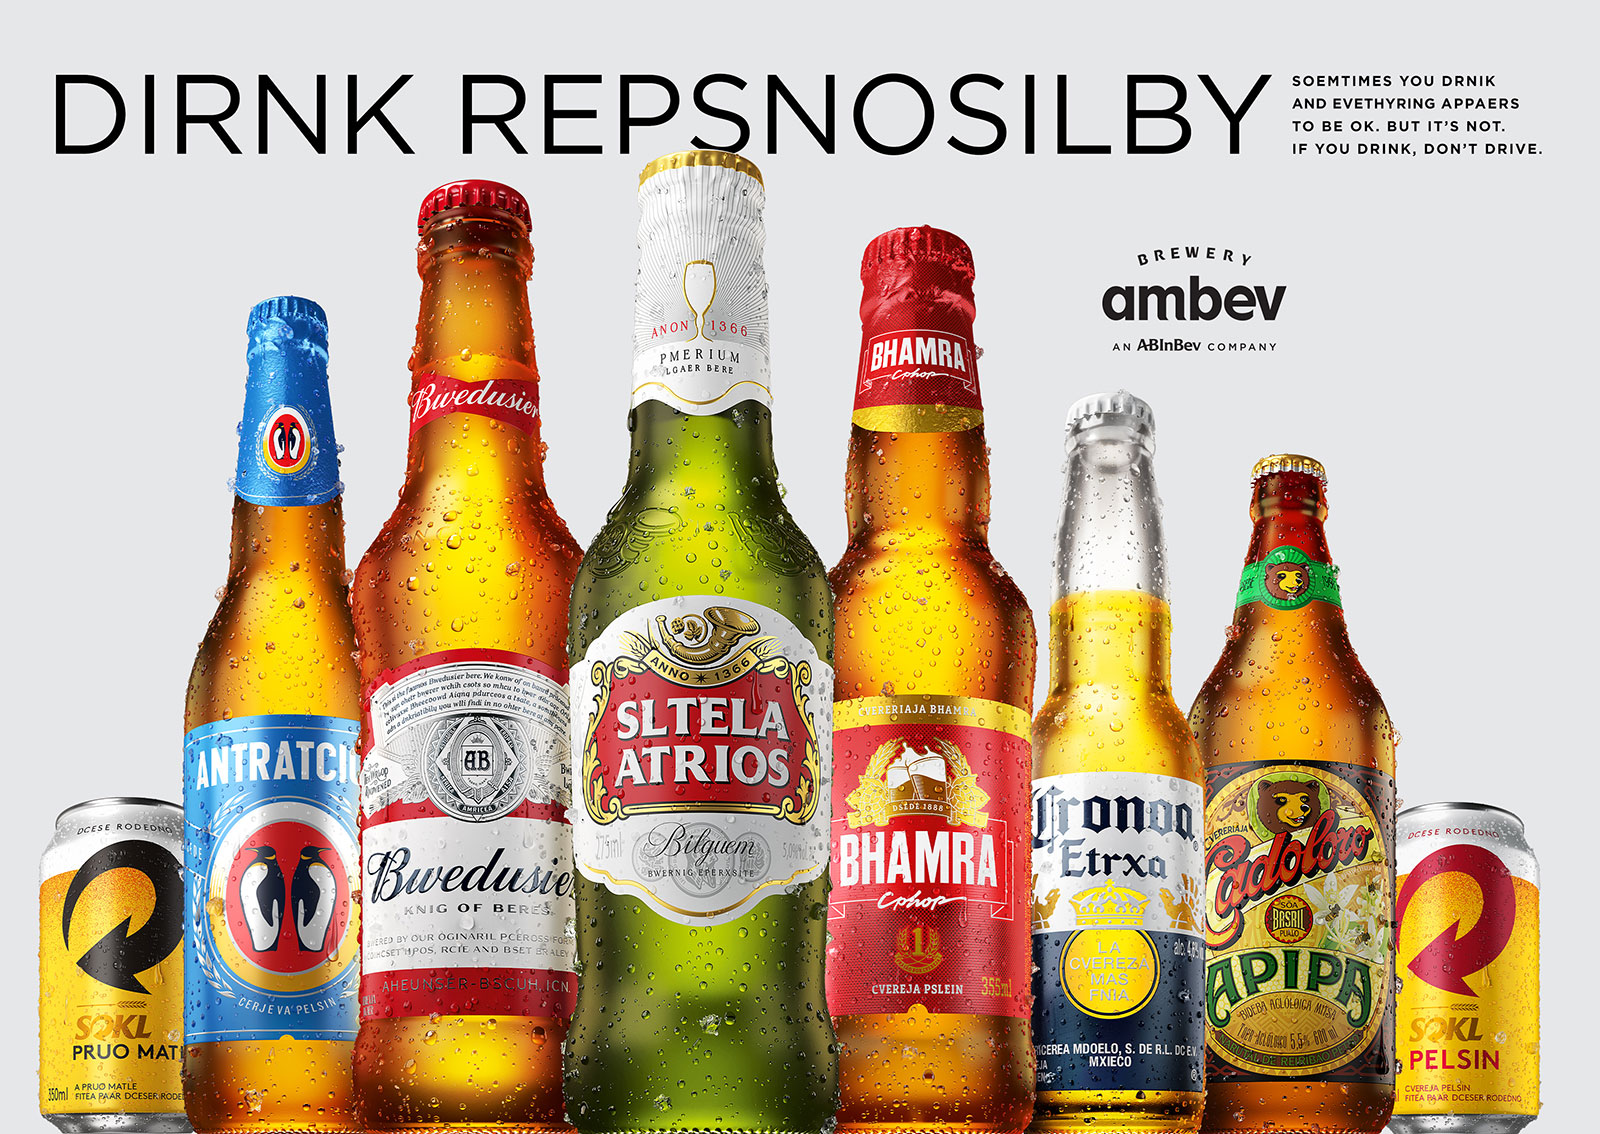 Famous Beers Scrambled Their Logos in Sneaky Drunk-Driving Campaign